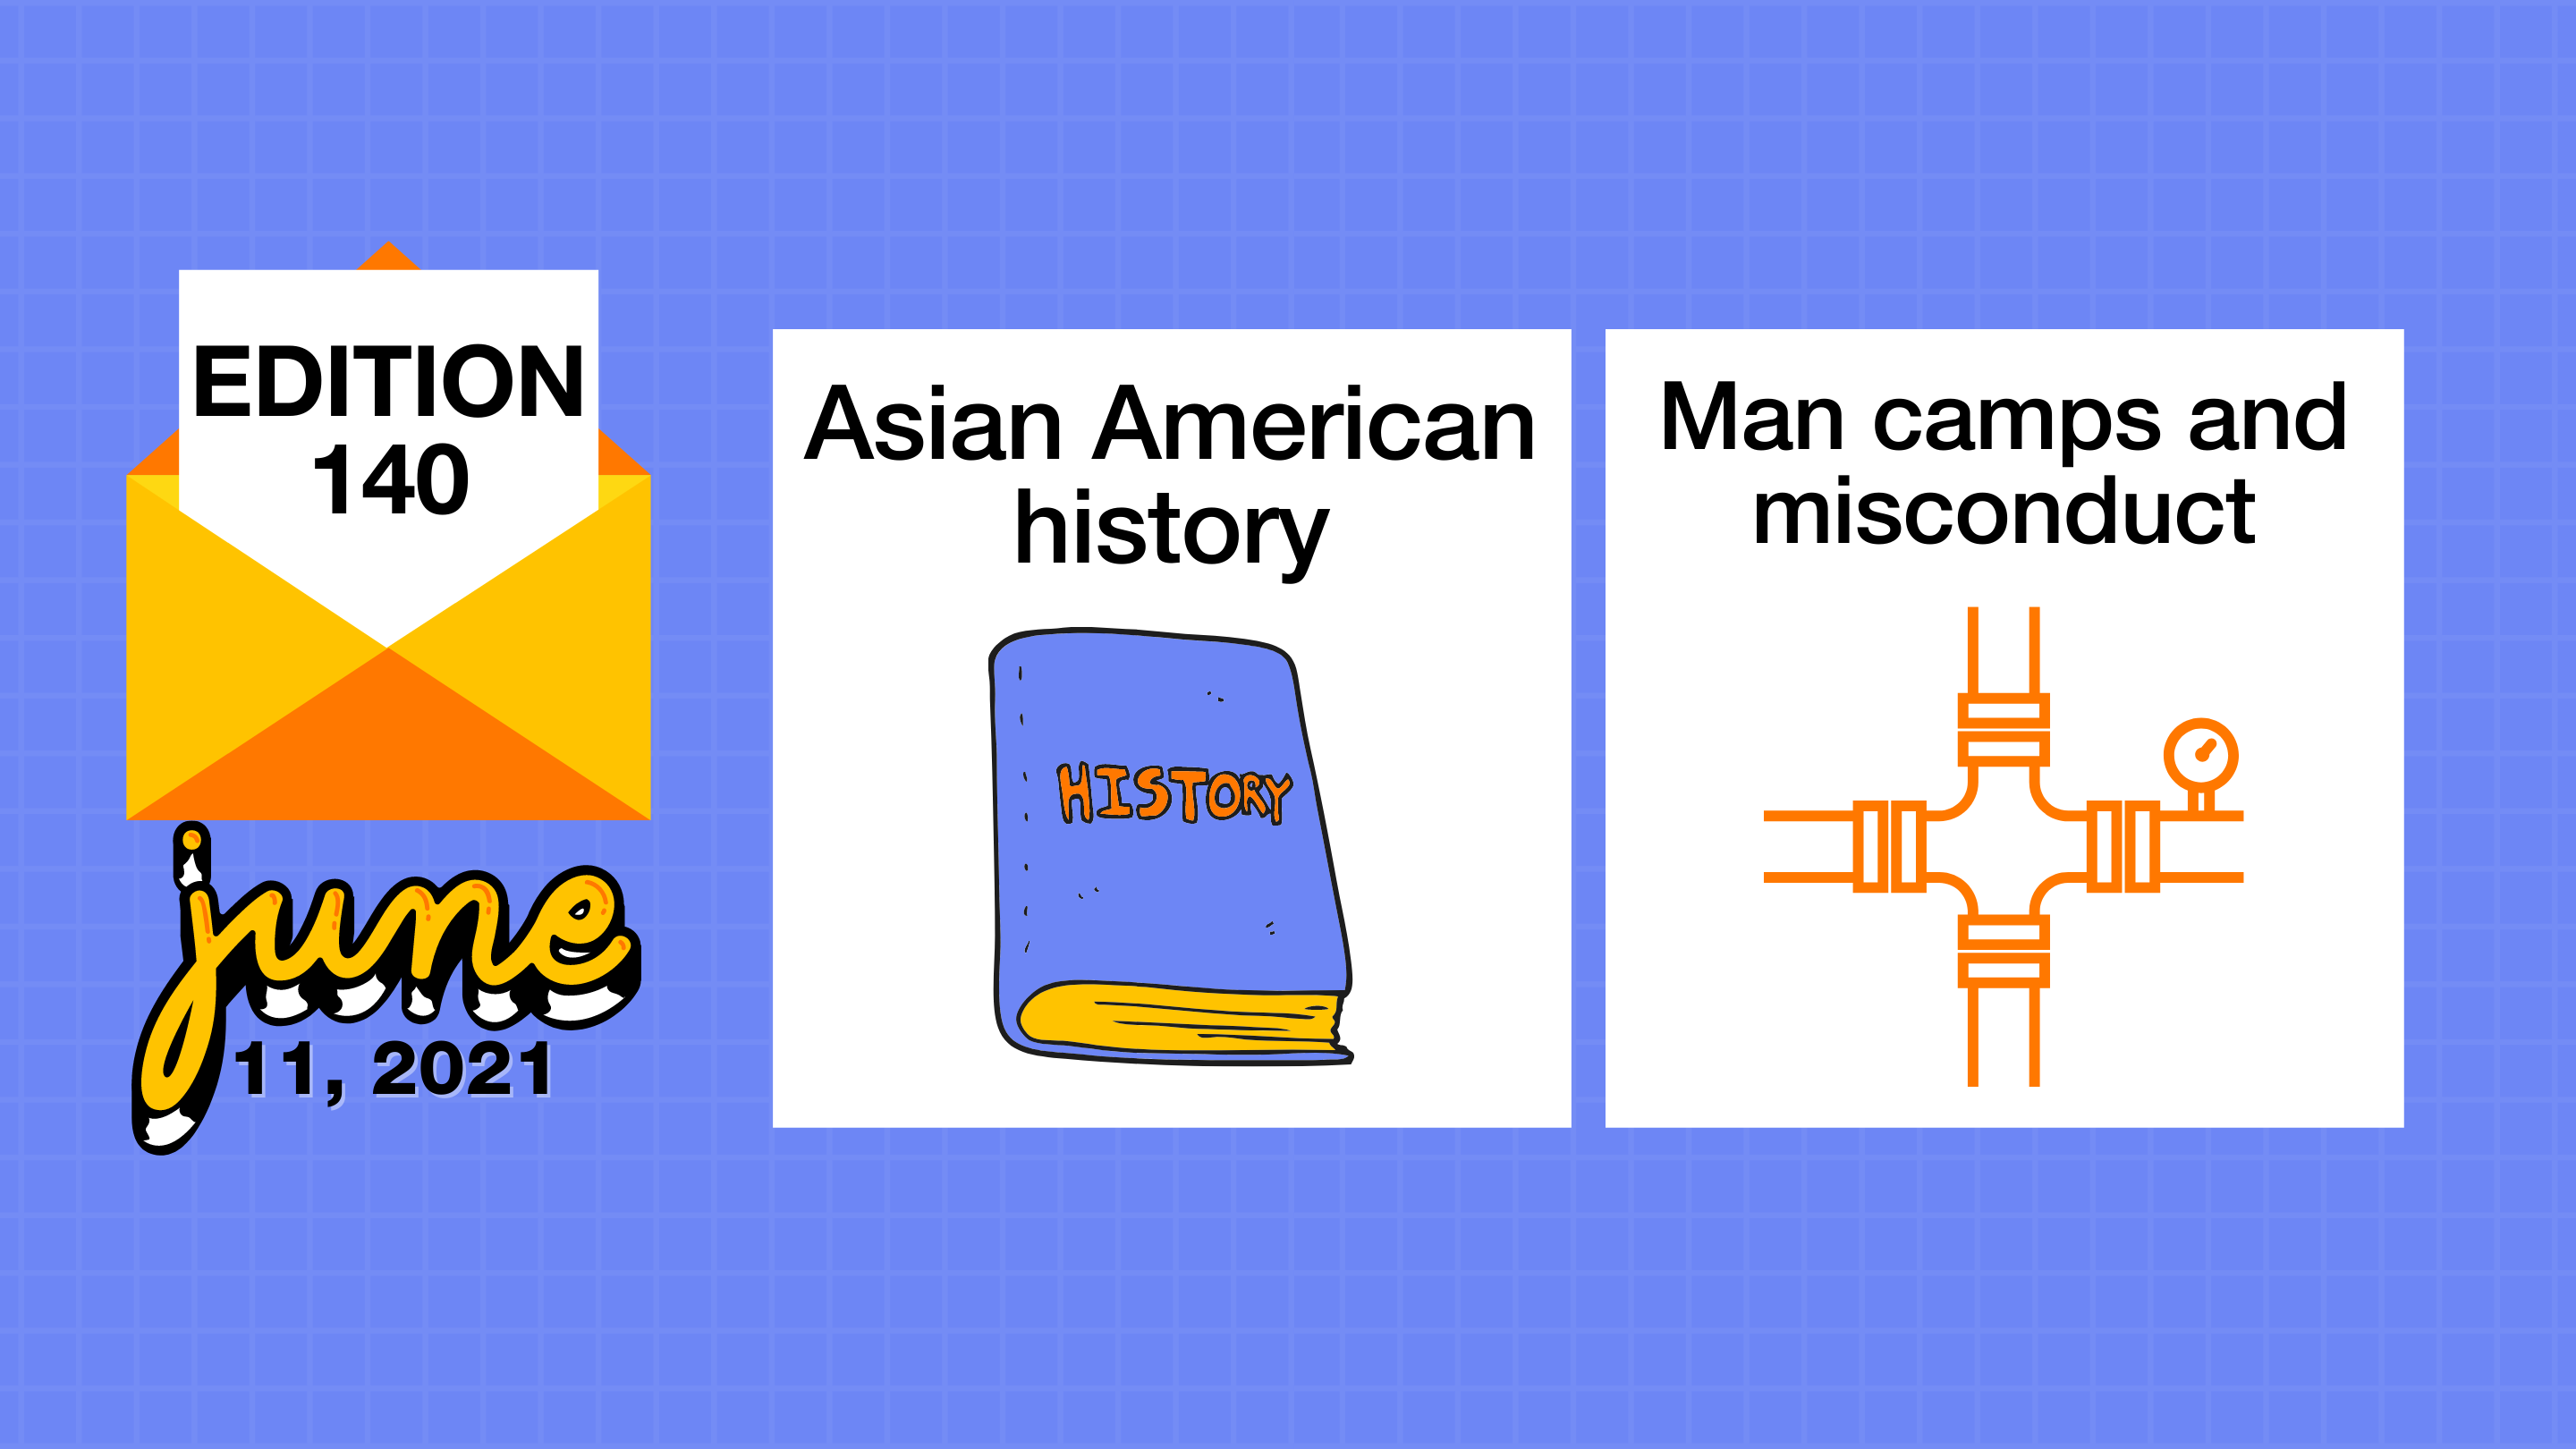 Asian American history makes history and sexual misconduct from p